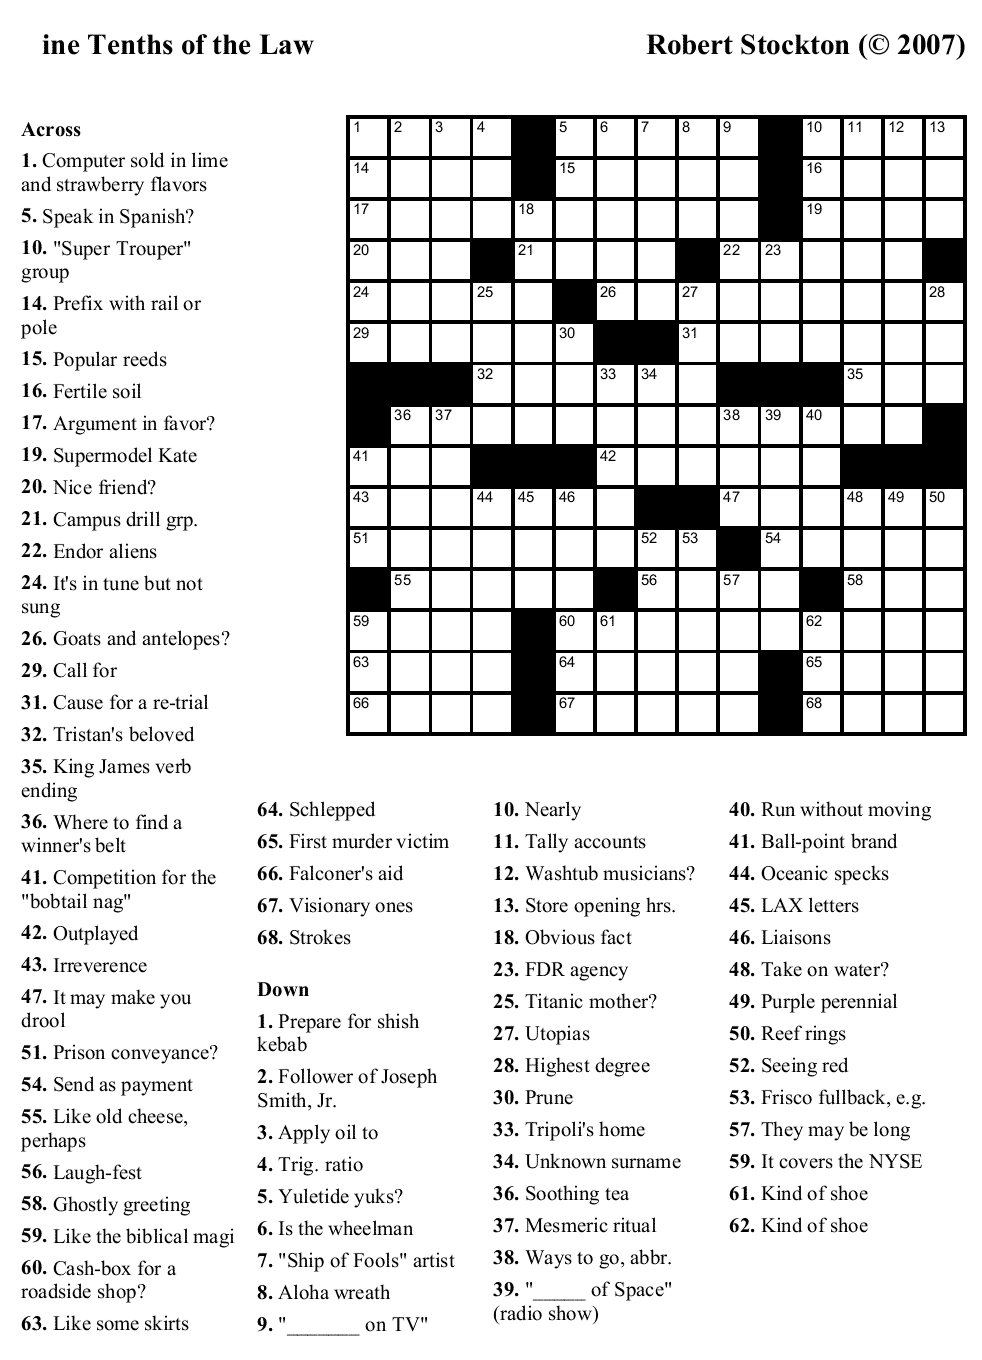 Crossword Puzzles Printable - Yahoo Image Search Results | Crossword - Printable Sports Crossword Puzzles With Answers